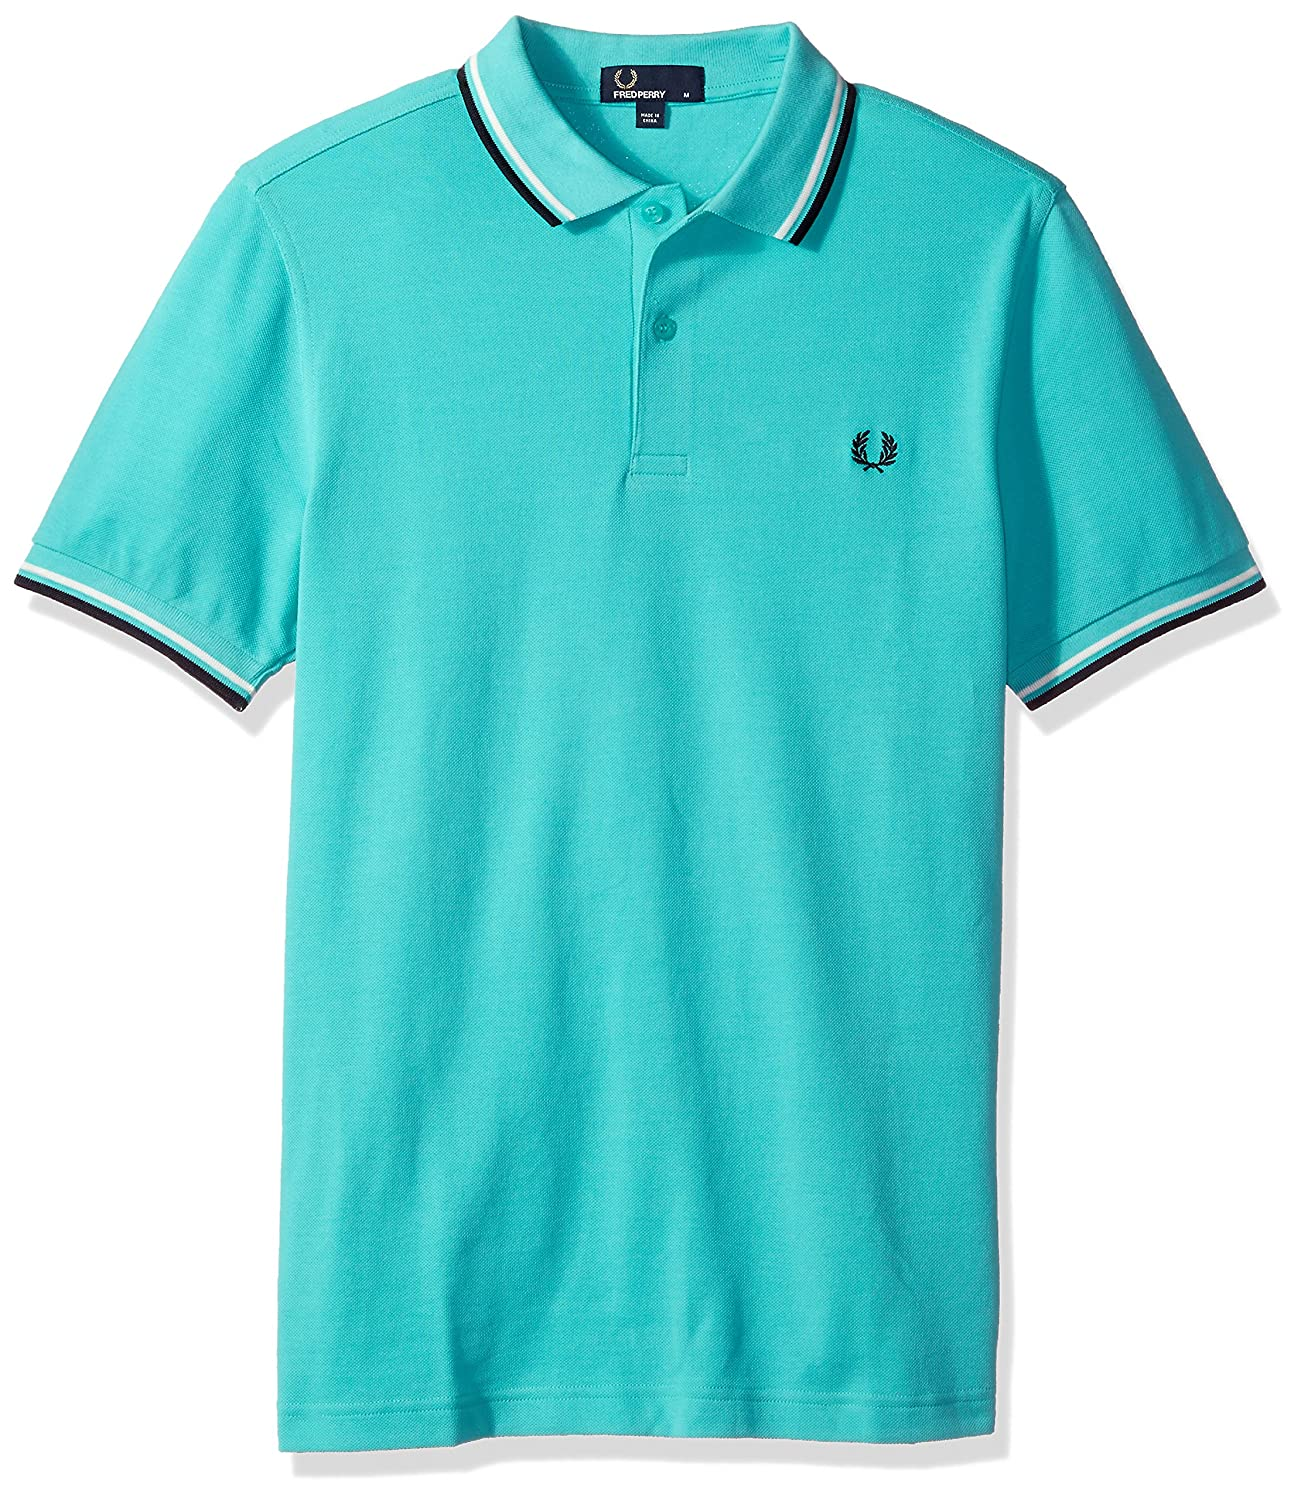 Fred Perry Herren Poloshirt Twin Tipped Polo Shirt, Pepmnt/SW/Nvy, X-Large:  Amazon.de: Bekleidung